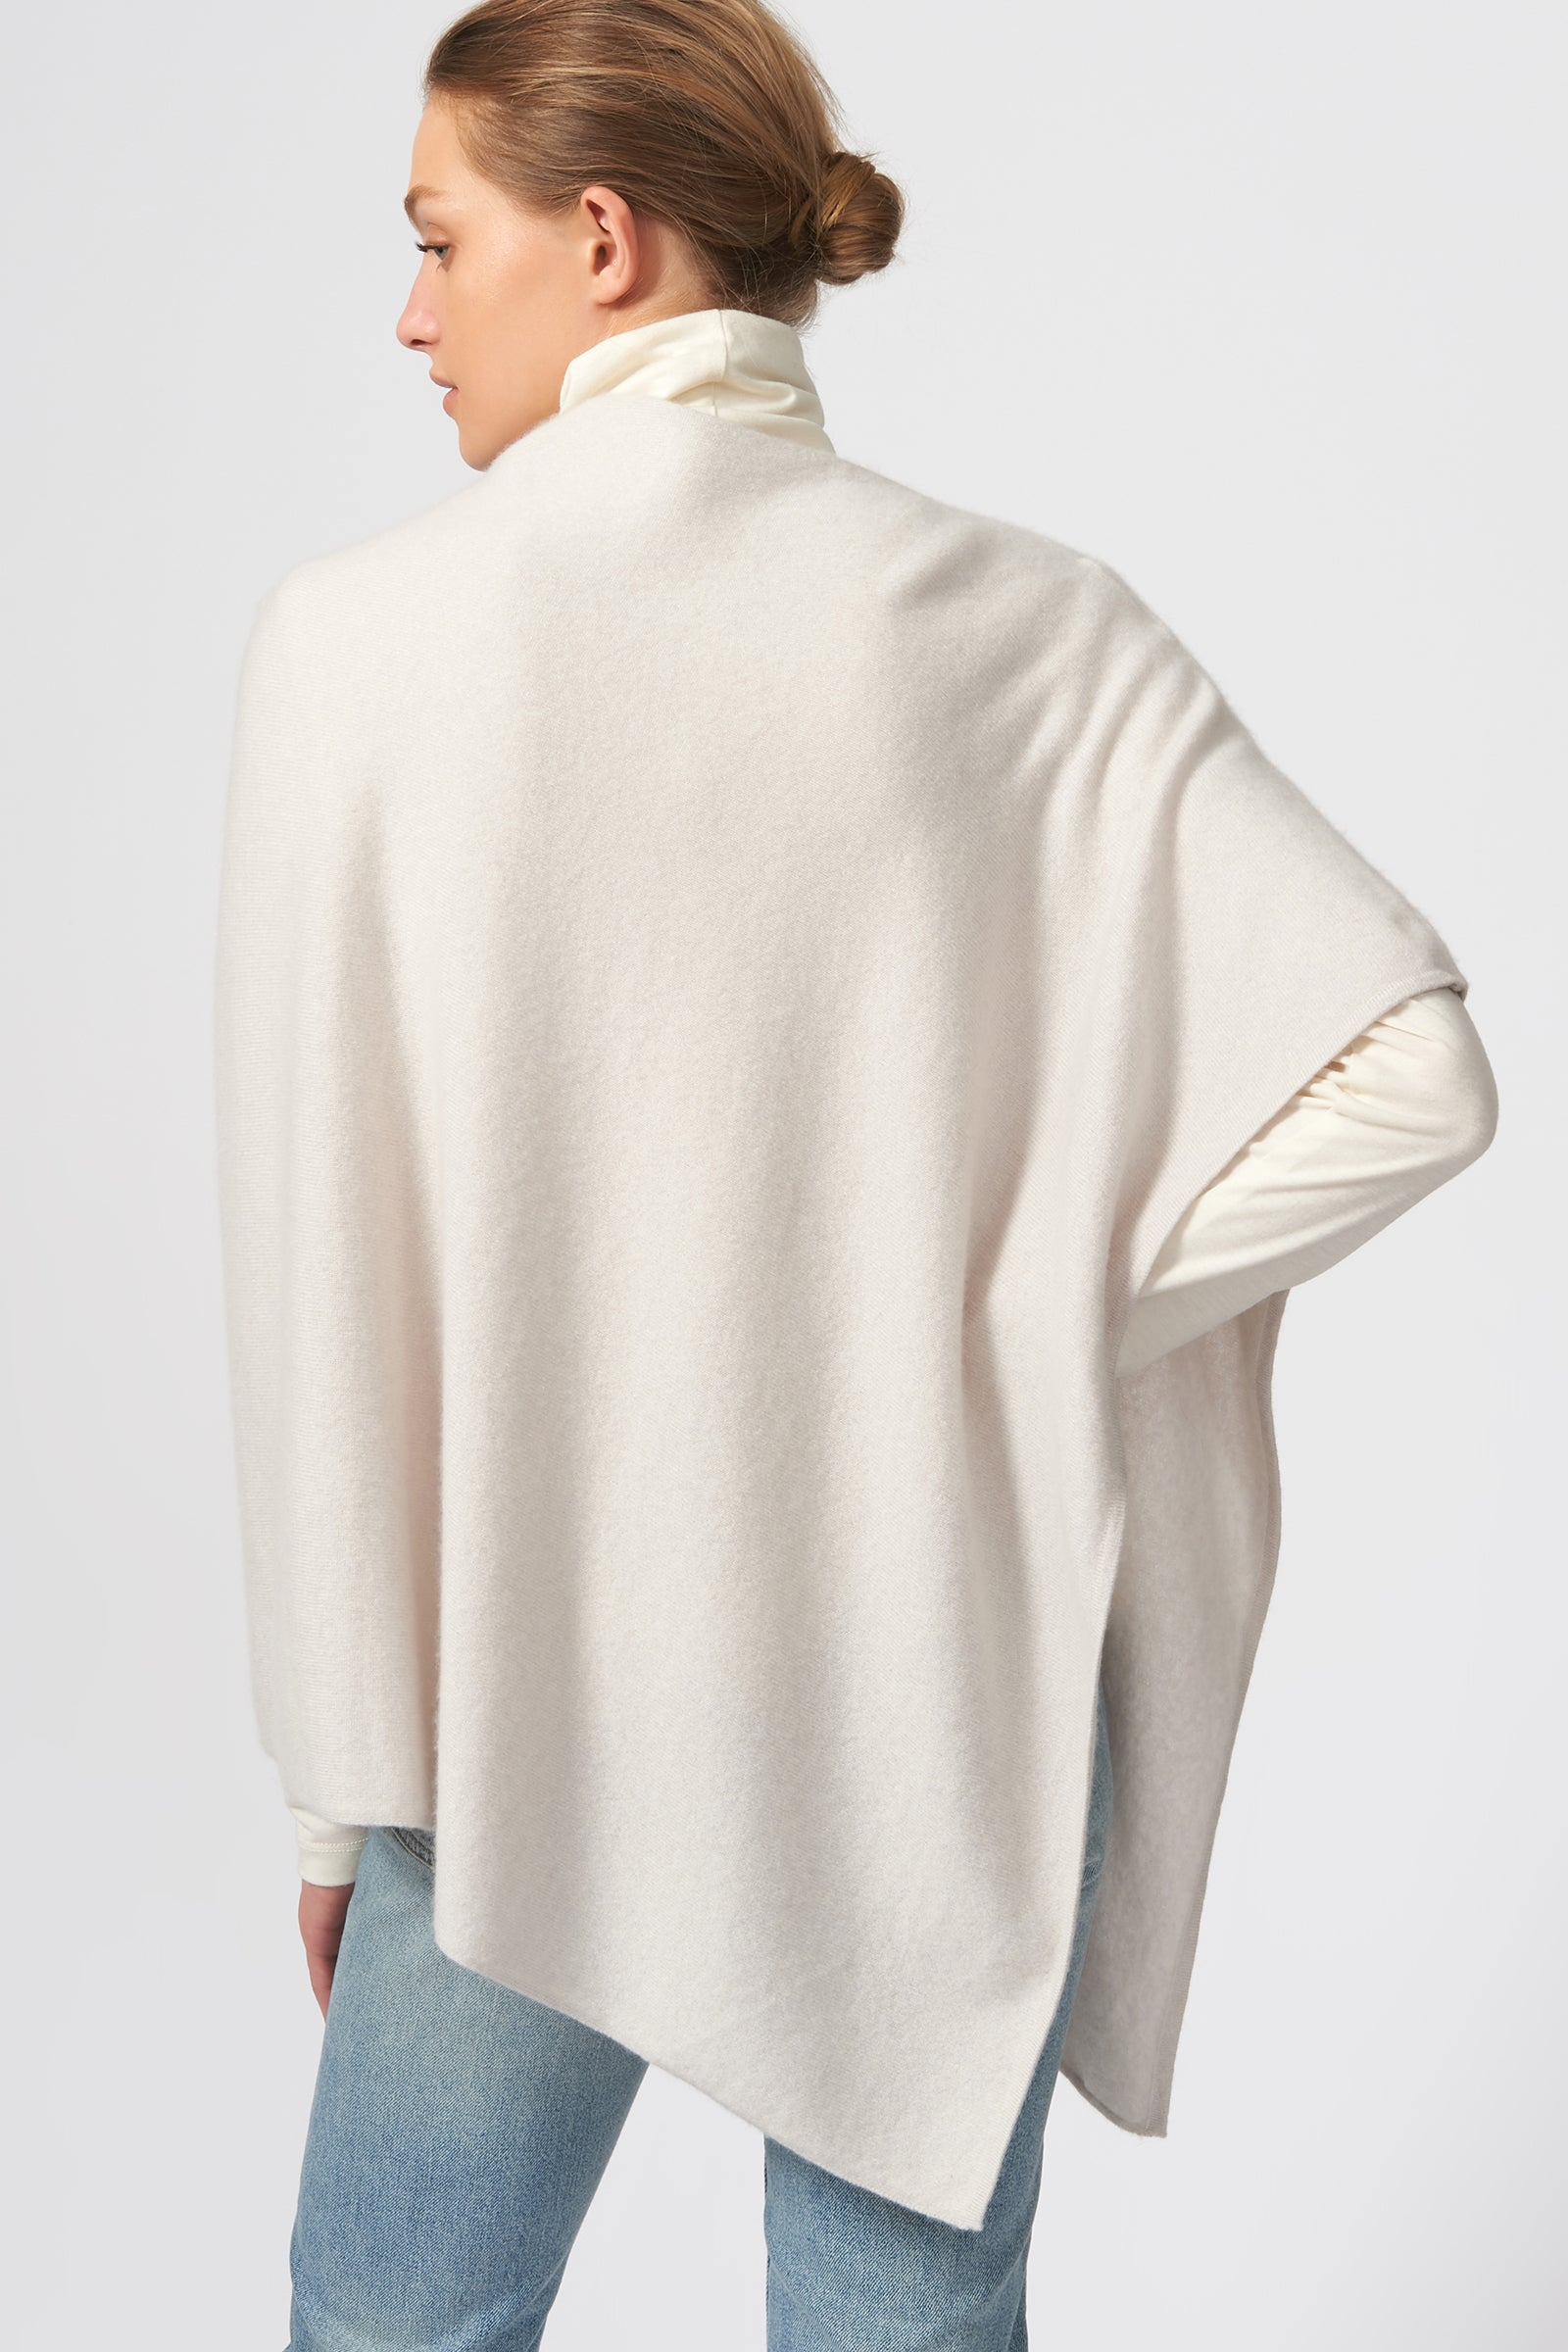 Kal Rieman Cashmere Poncho in Haze on Model Back View